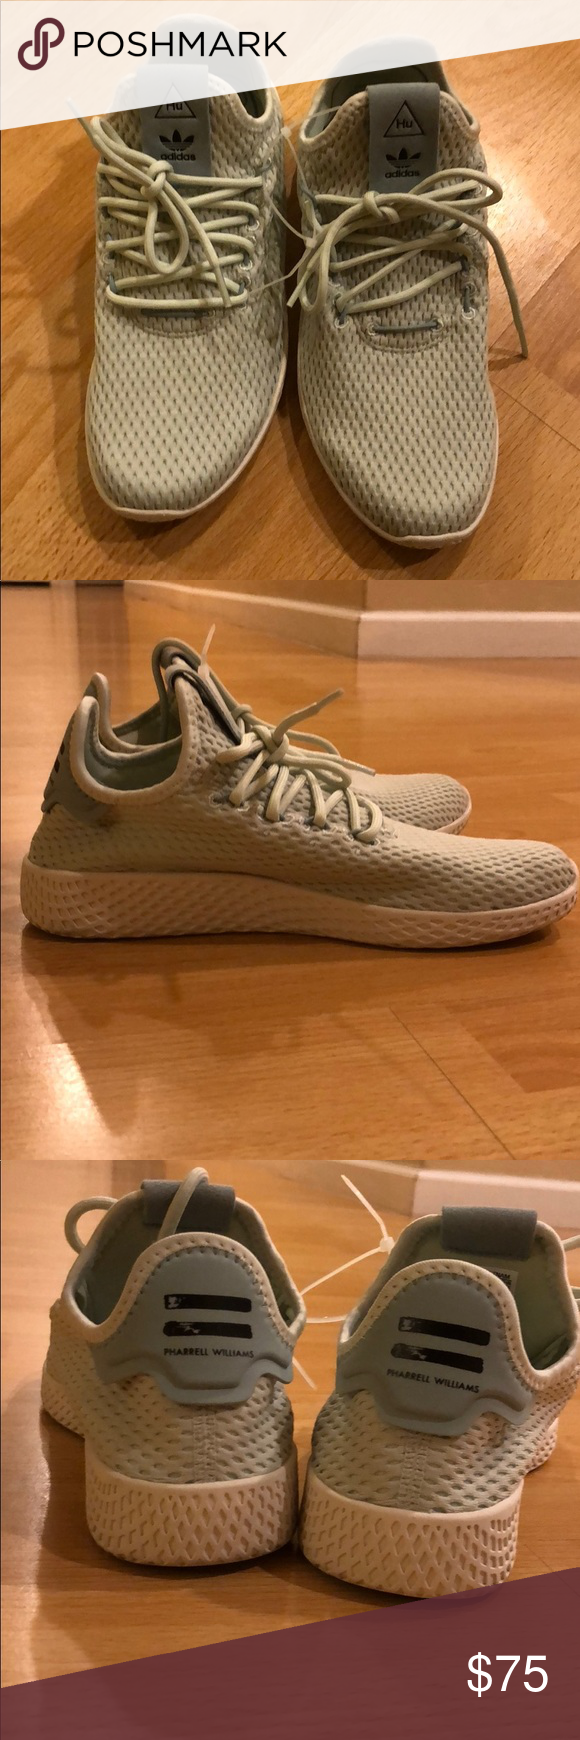 de41b7bf369a7 Adidas X Pharrell Williams tennis Hu Adidas tennis hu. Mint color. Brand  new without box. Women s size 7 but it s a size 5 for men.